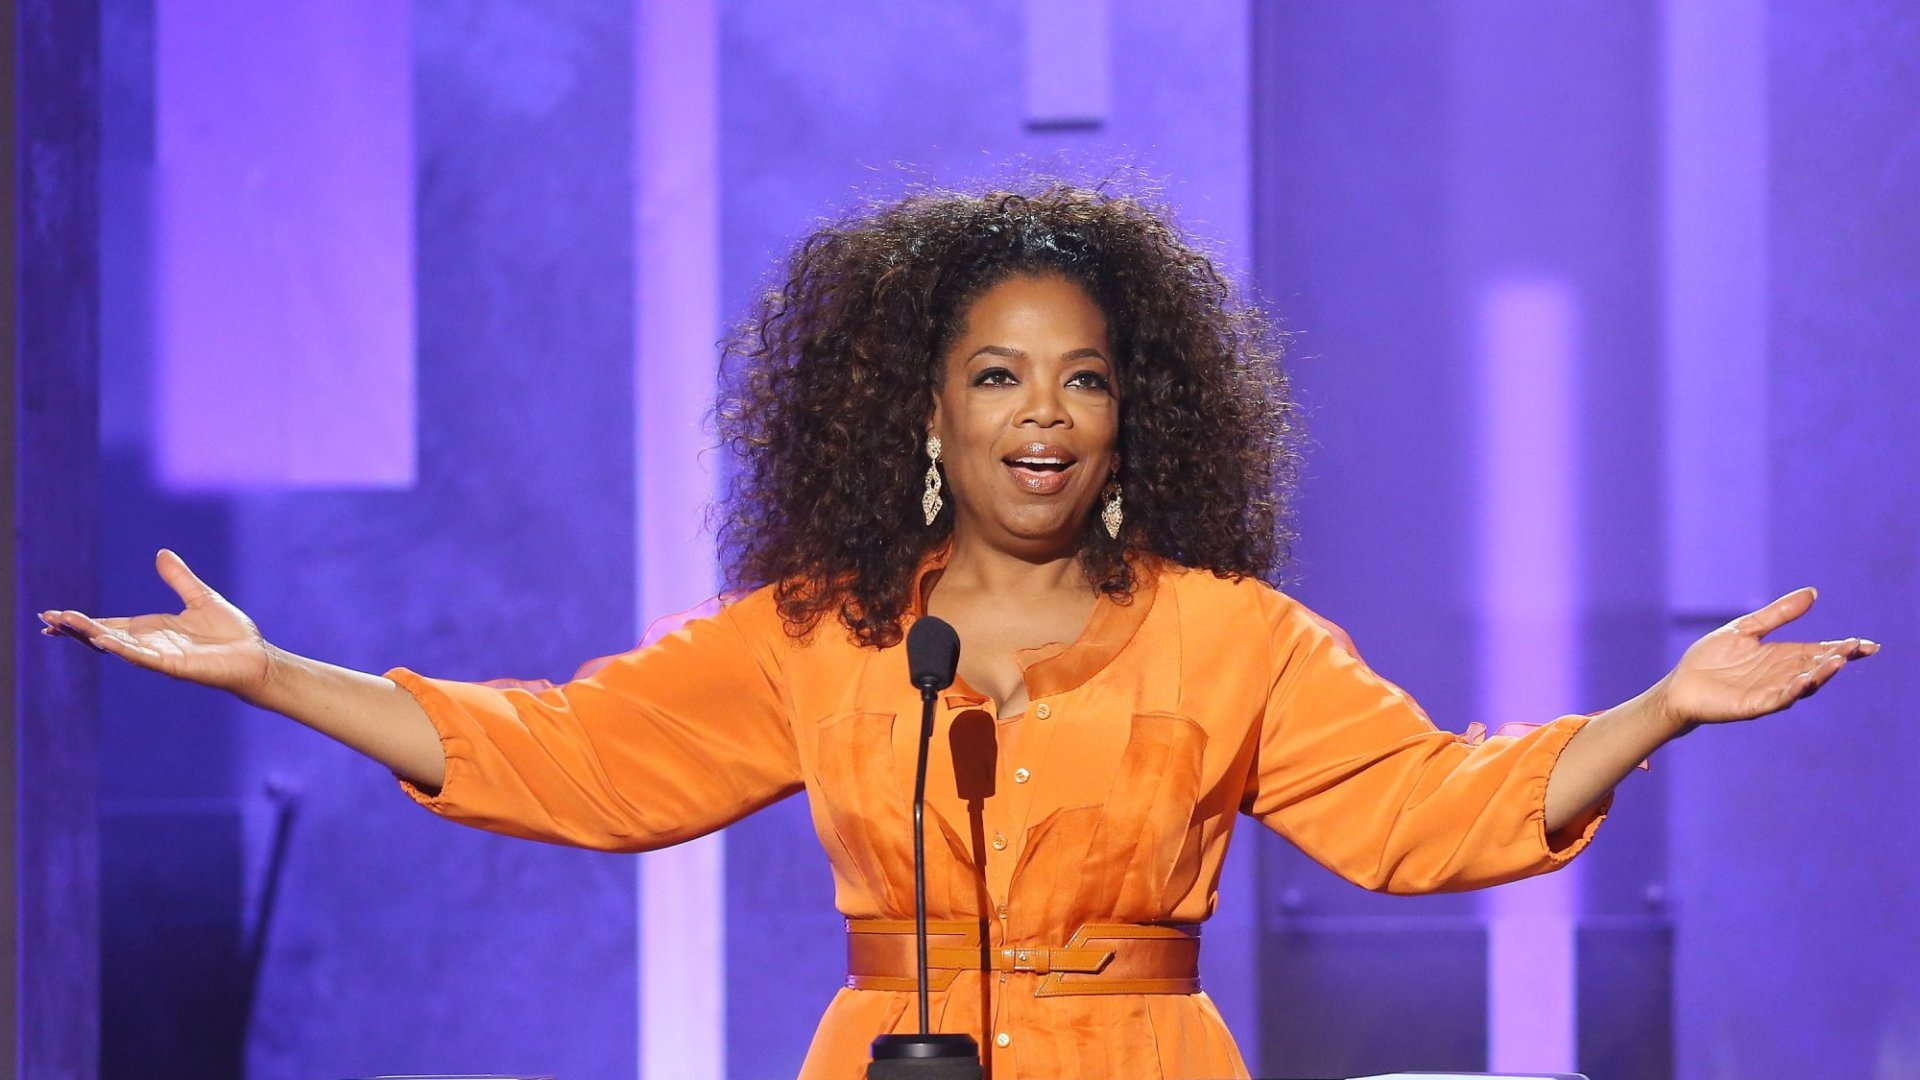 Oprah Winfrey Made $71 Million in a Single Day This Week. How Was Your Monday?